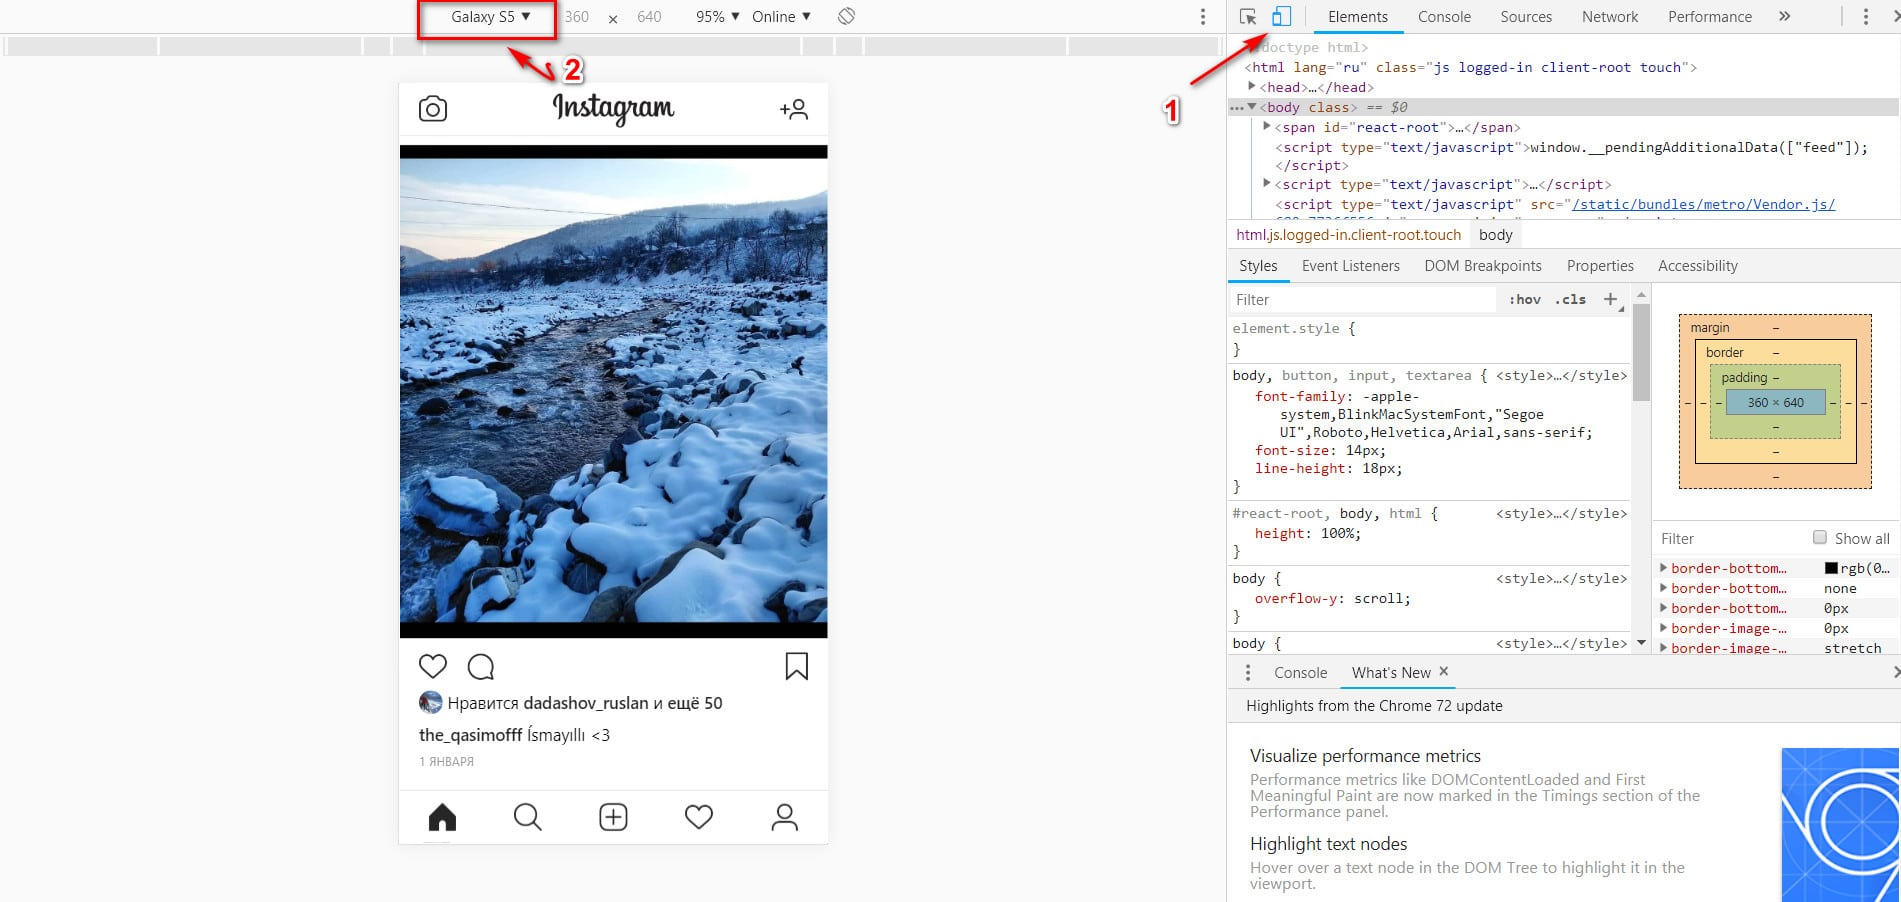 How to add Photo and Video to Instagram from computer